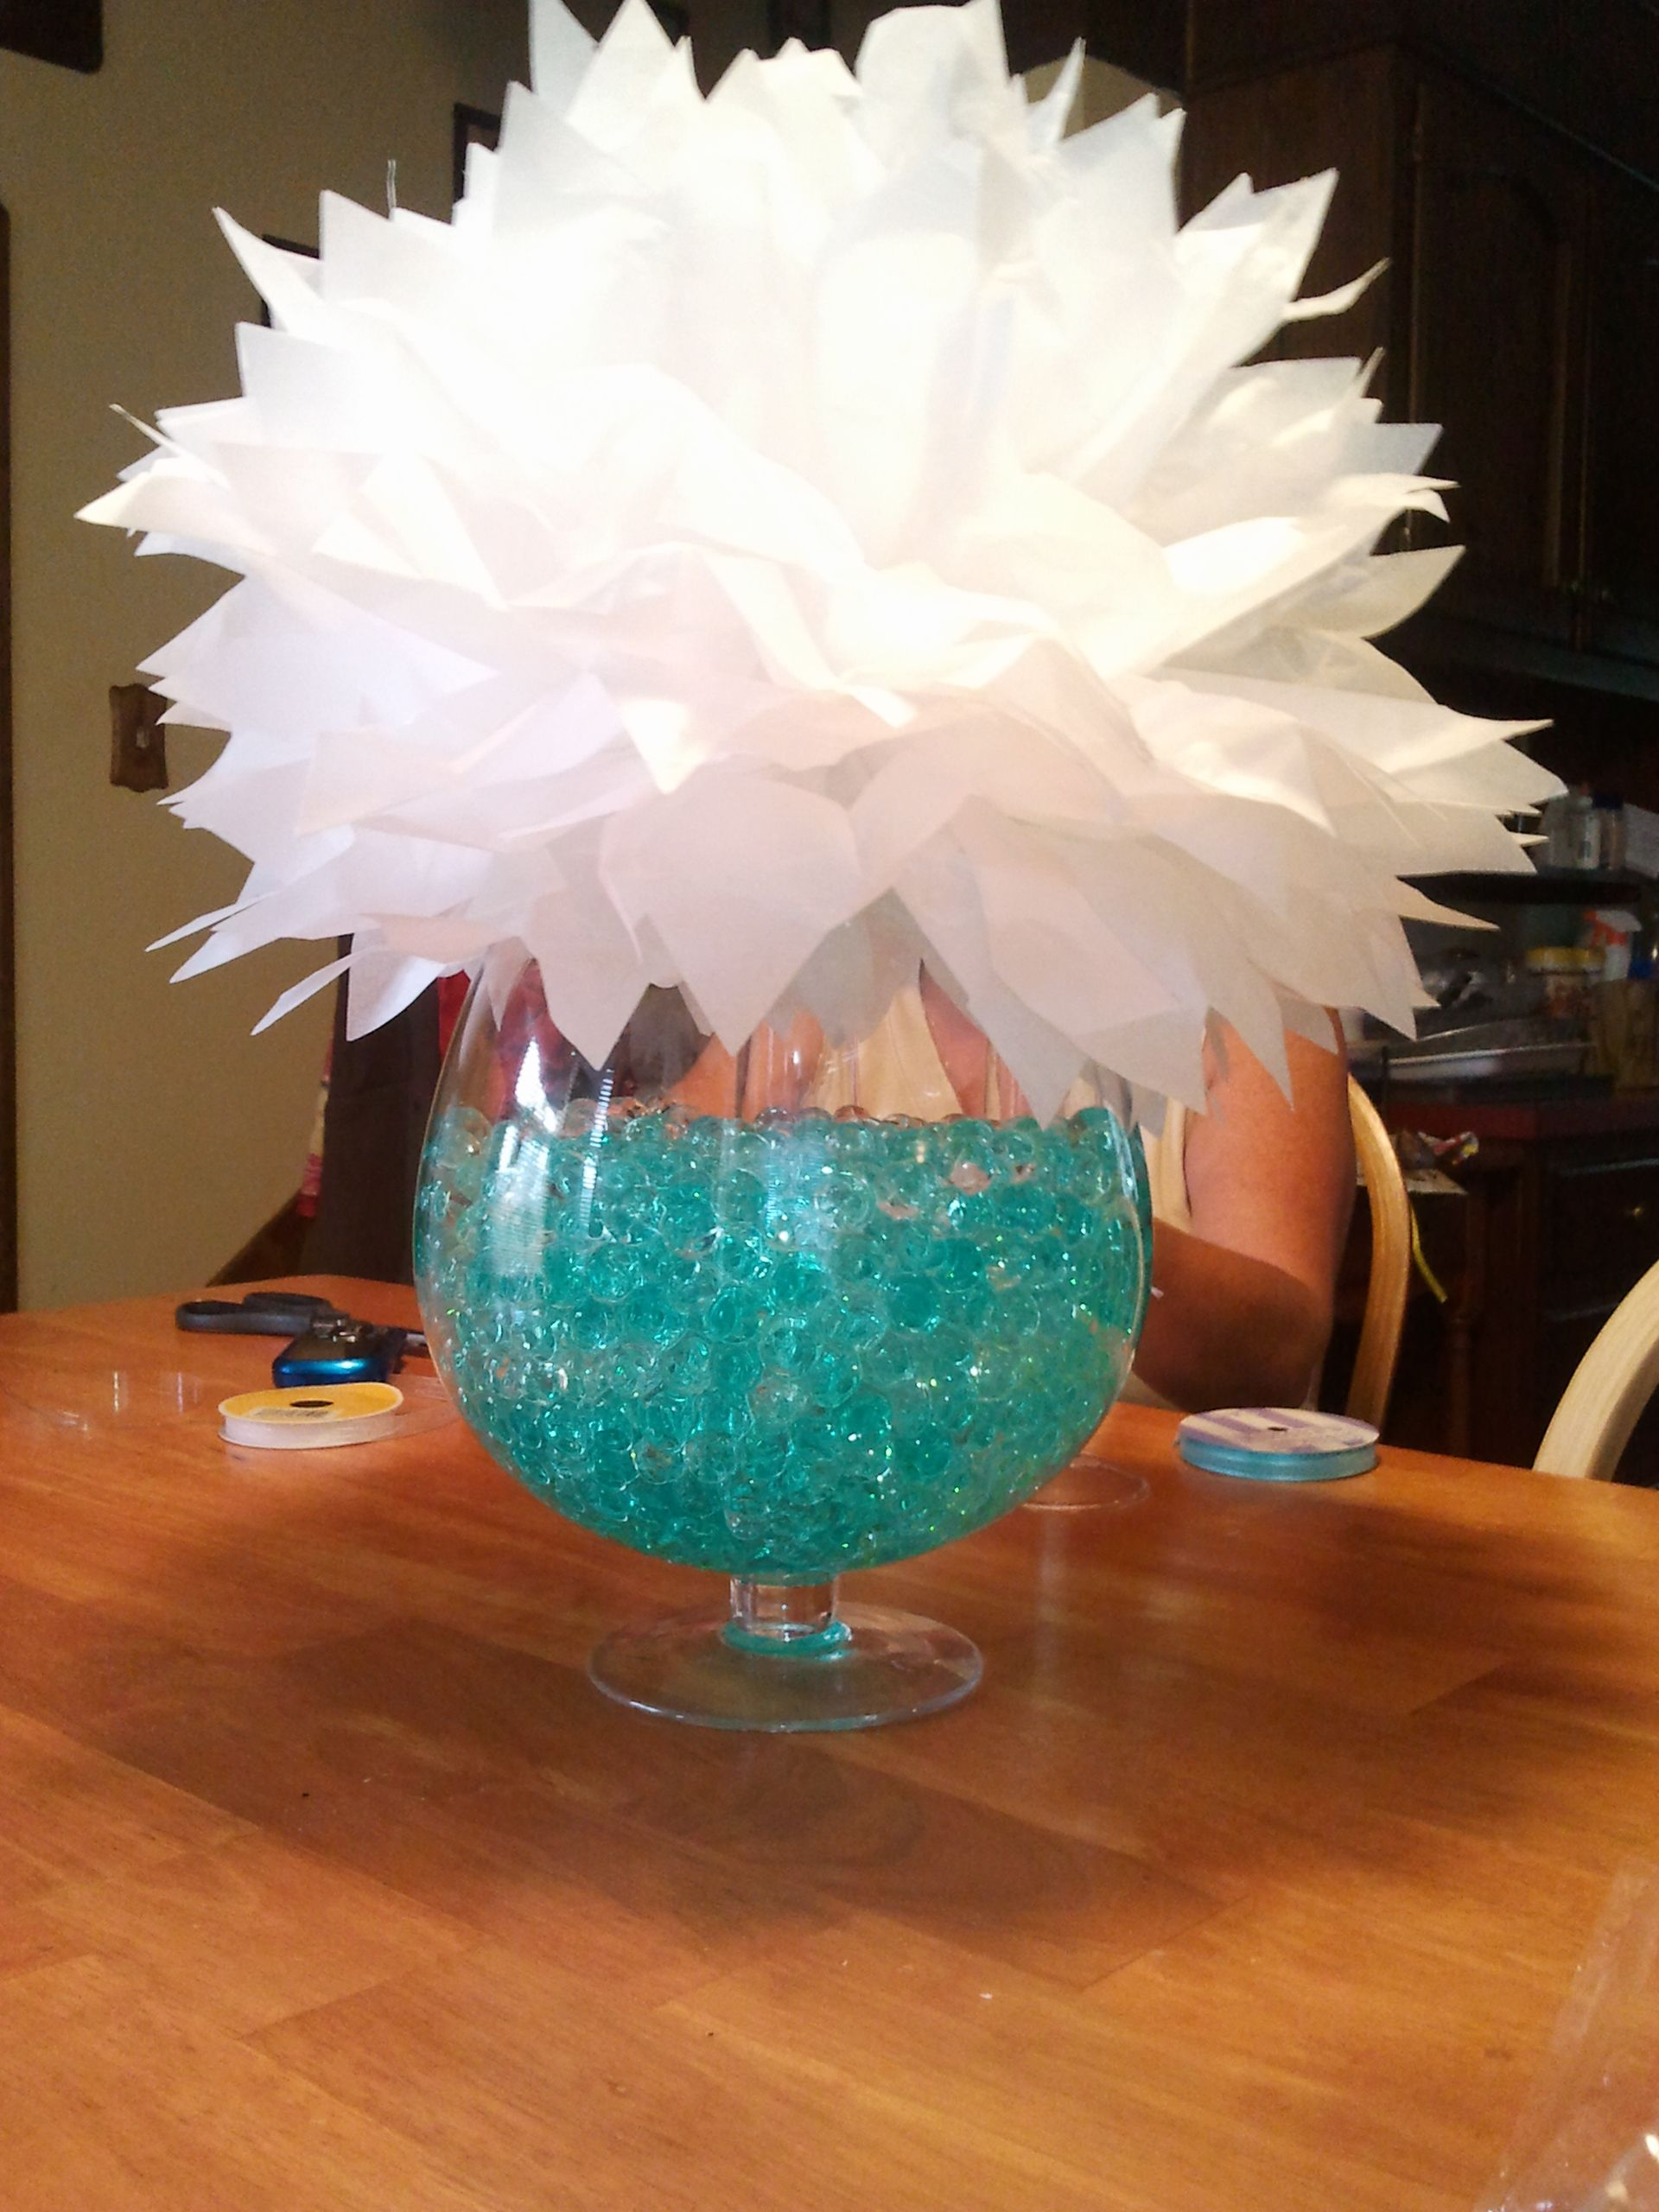 fish bowl vase  bowl filled with clear and turquoise water